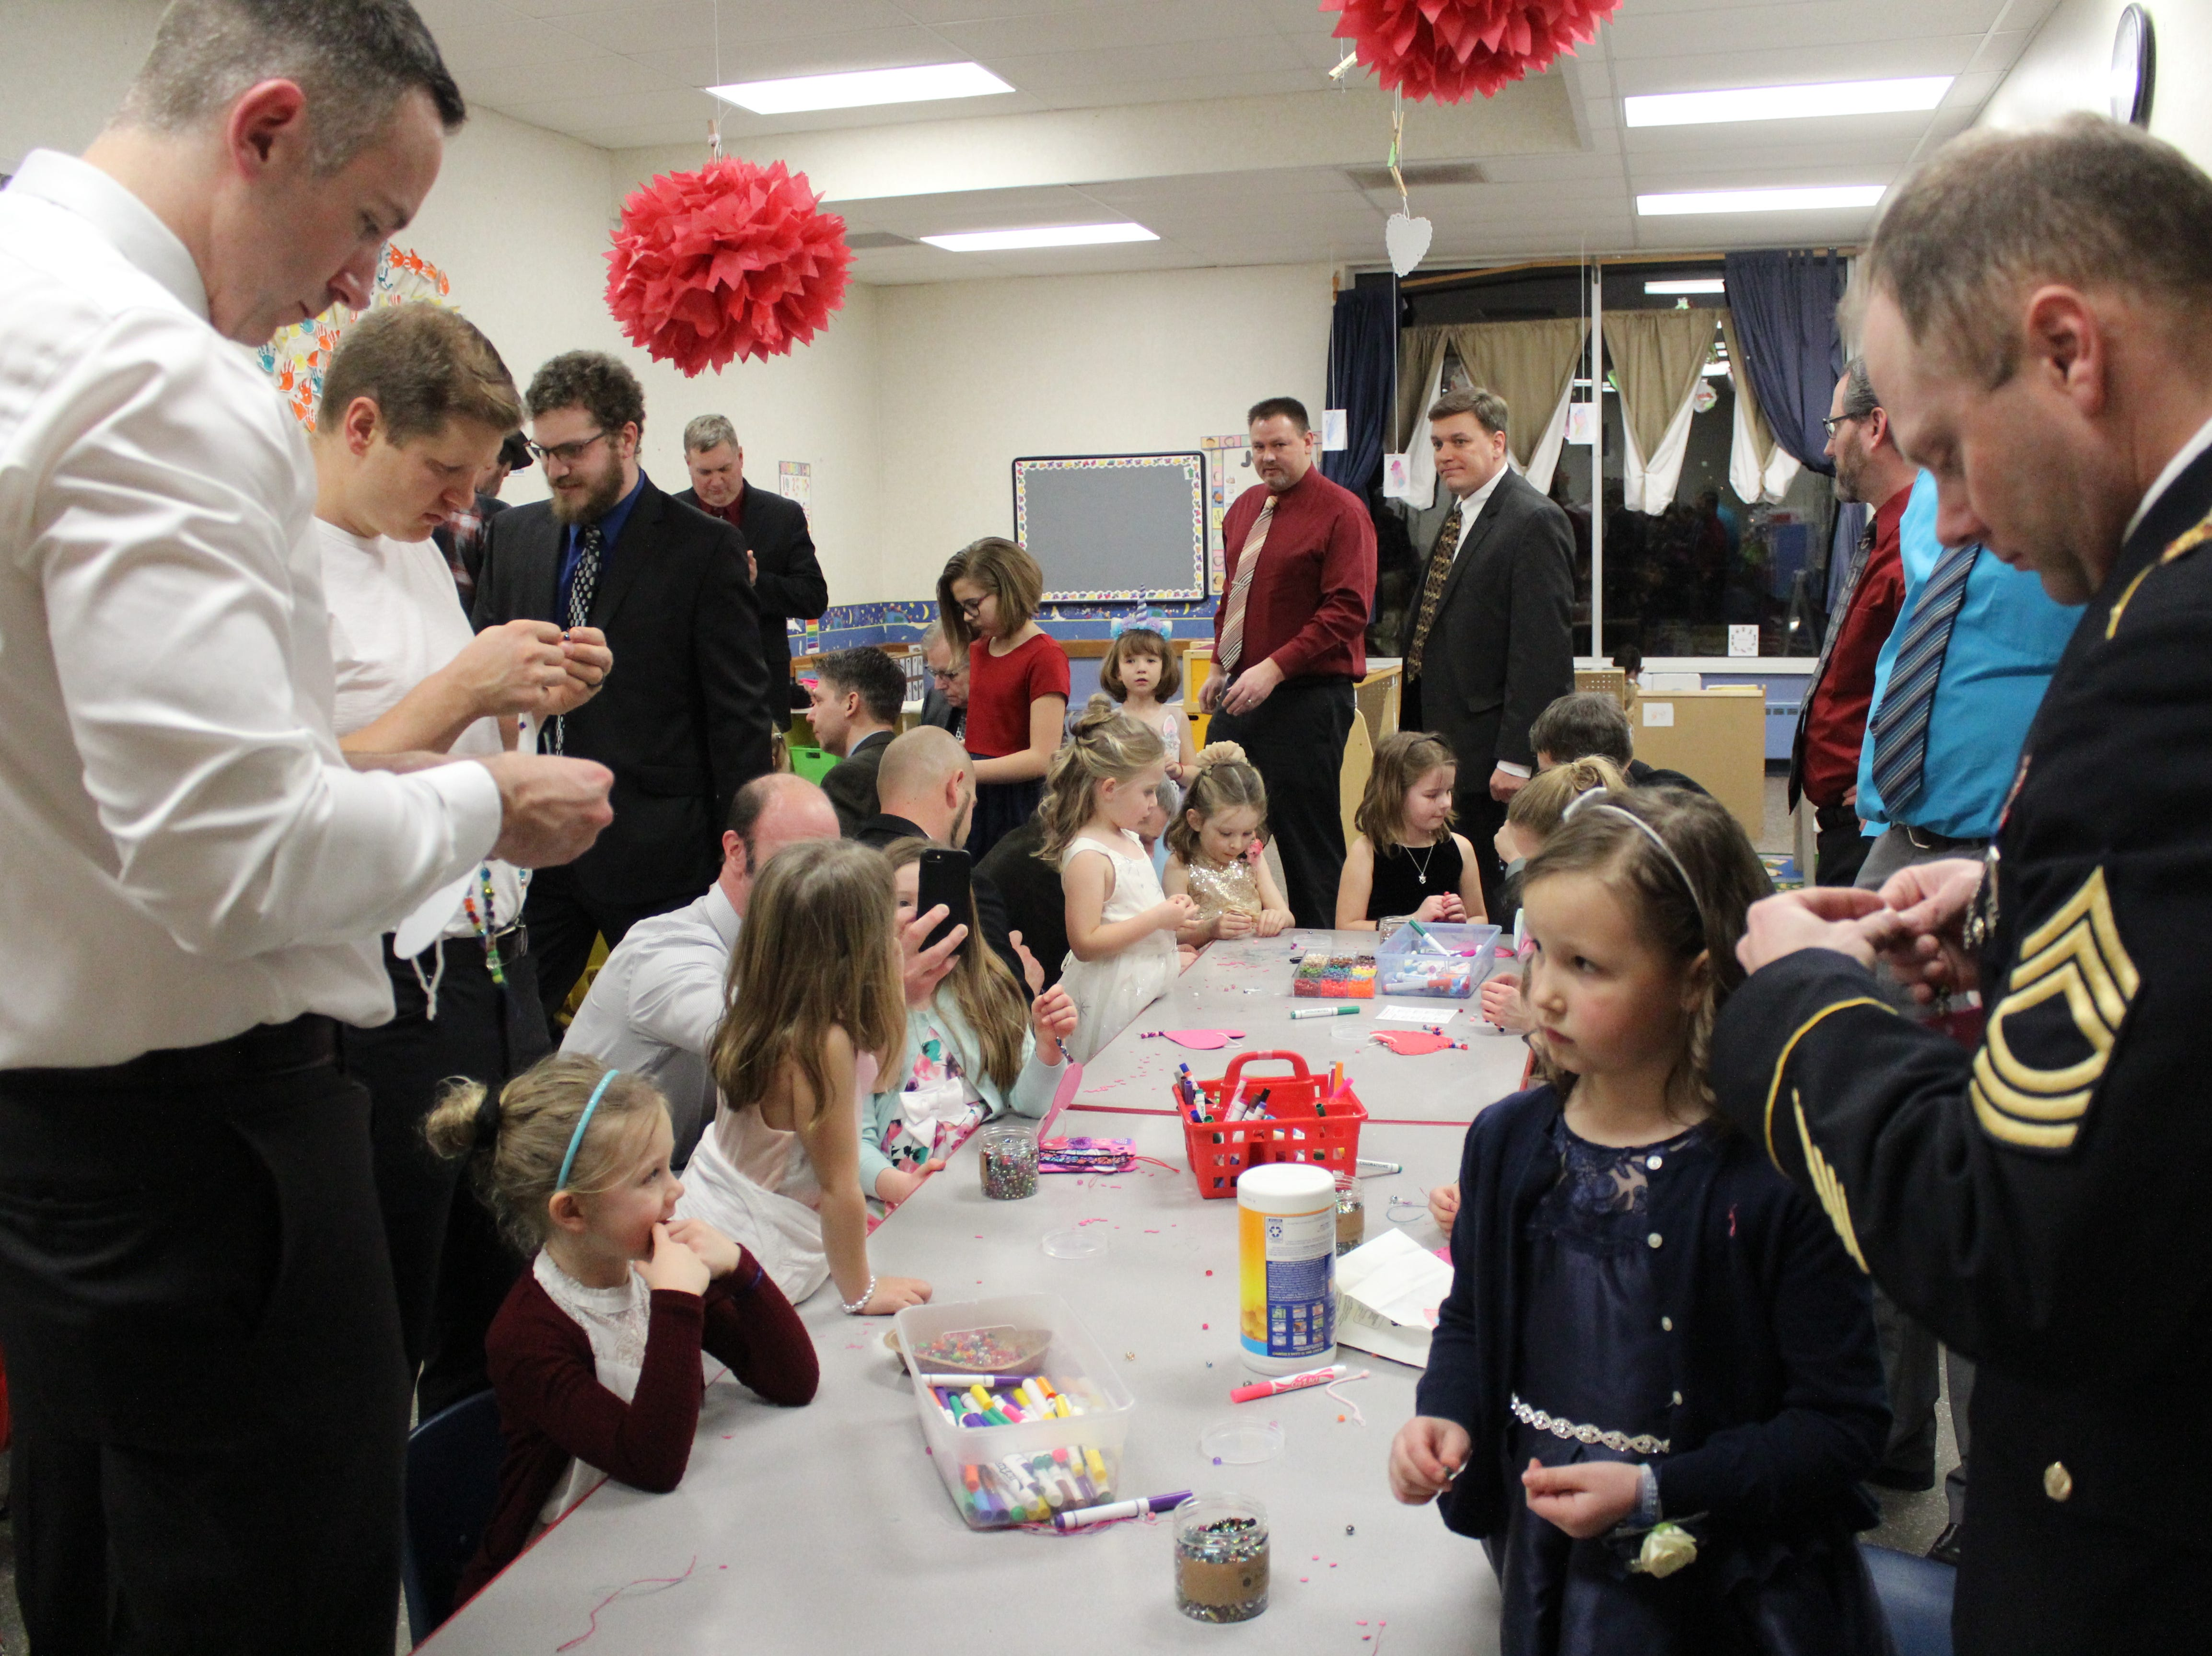 Fathers and daughters enjoy a night out at the annual Woodson YMCA Father Daughter dance. There were several craft stations throughout the building with Valentine's Day-themed goodies.